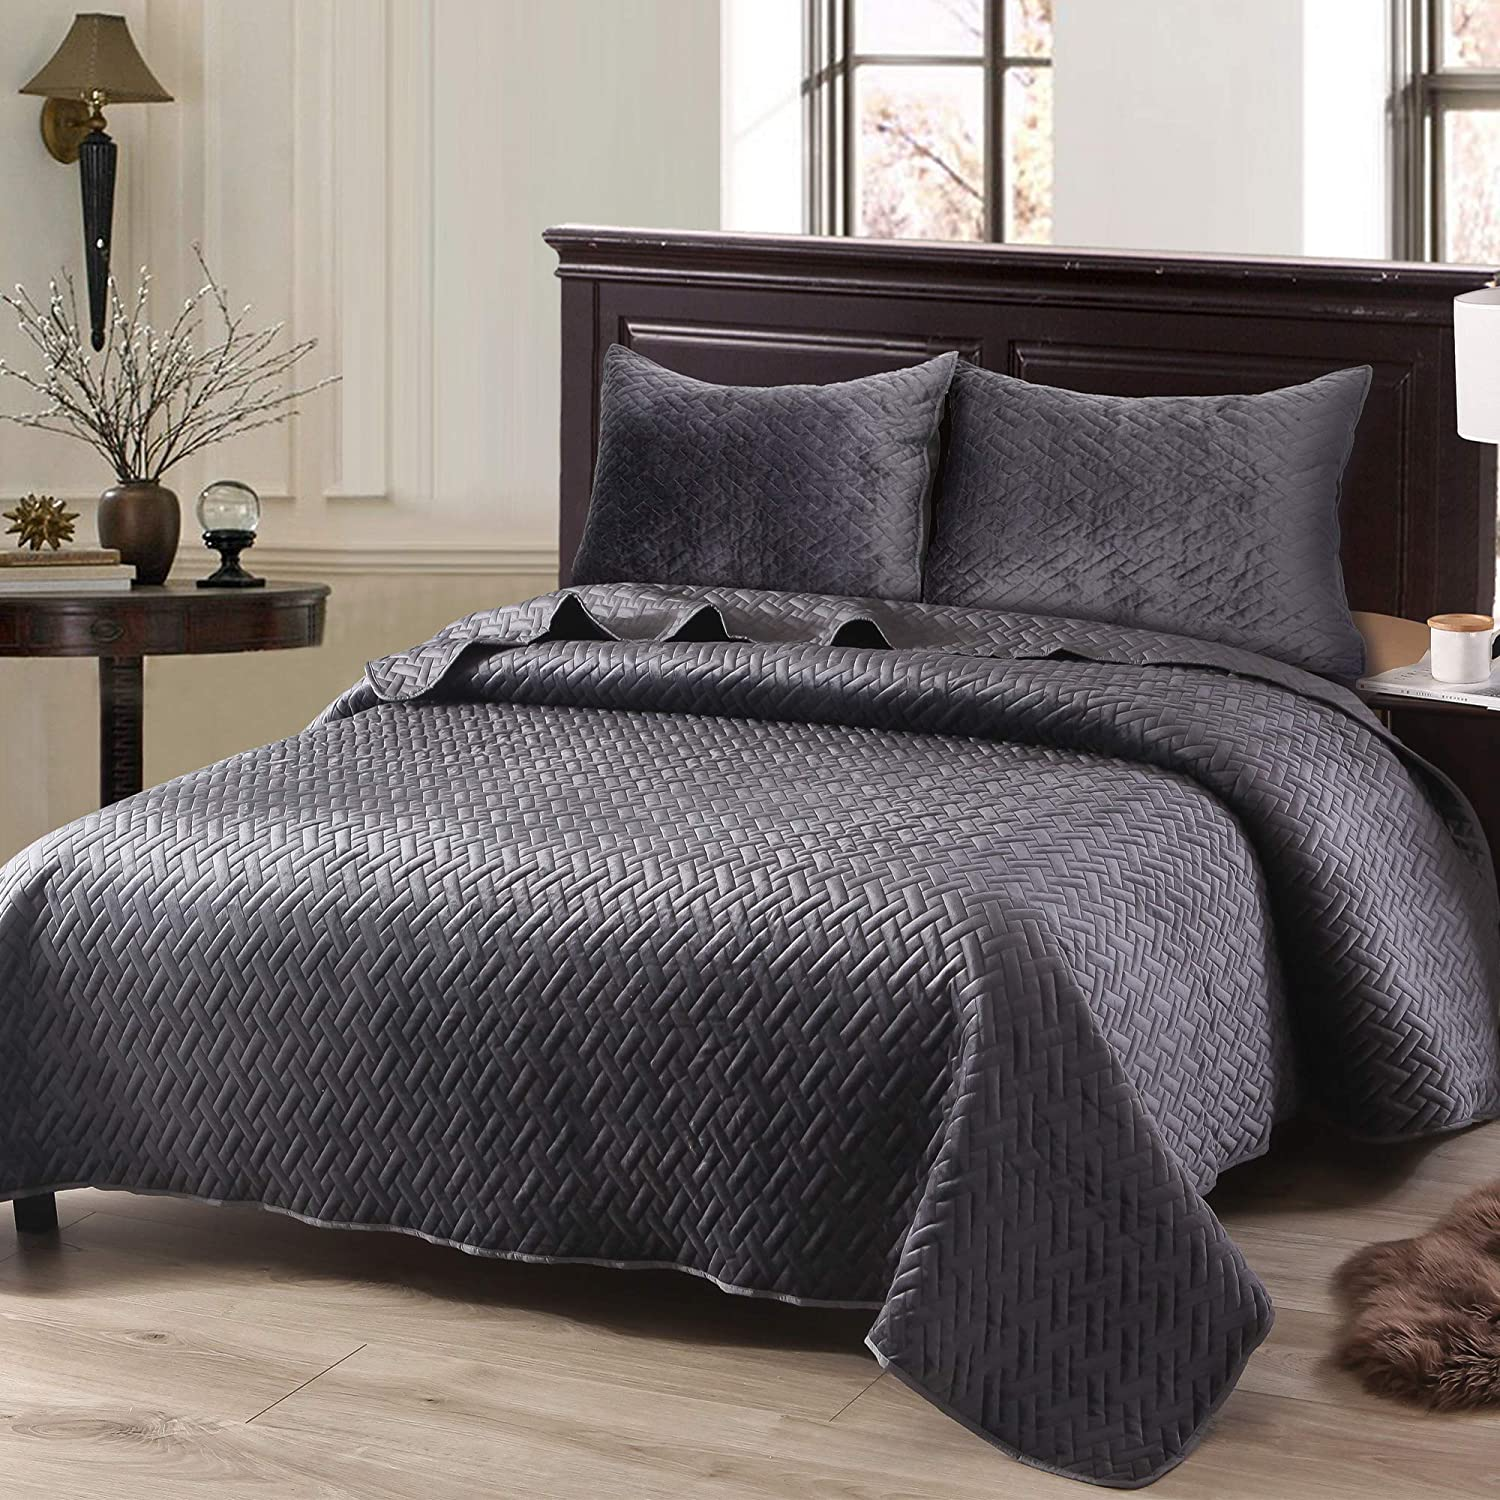 Exclusivo Mezcla Luxurious 3-Piece Queen Size Velvet Quilt Set with Pillow Shams, as Bedspread/Coverlet/Bed Cover(Solid Grey) - Soft, Lightweight, Reversible& Hypoallergenic